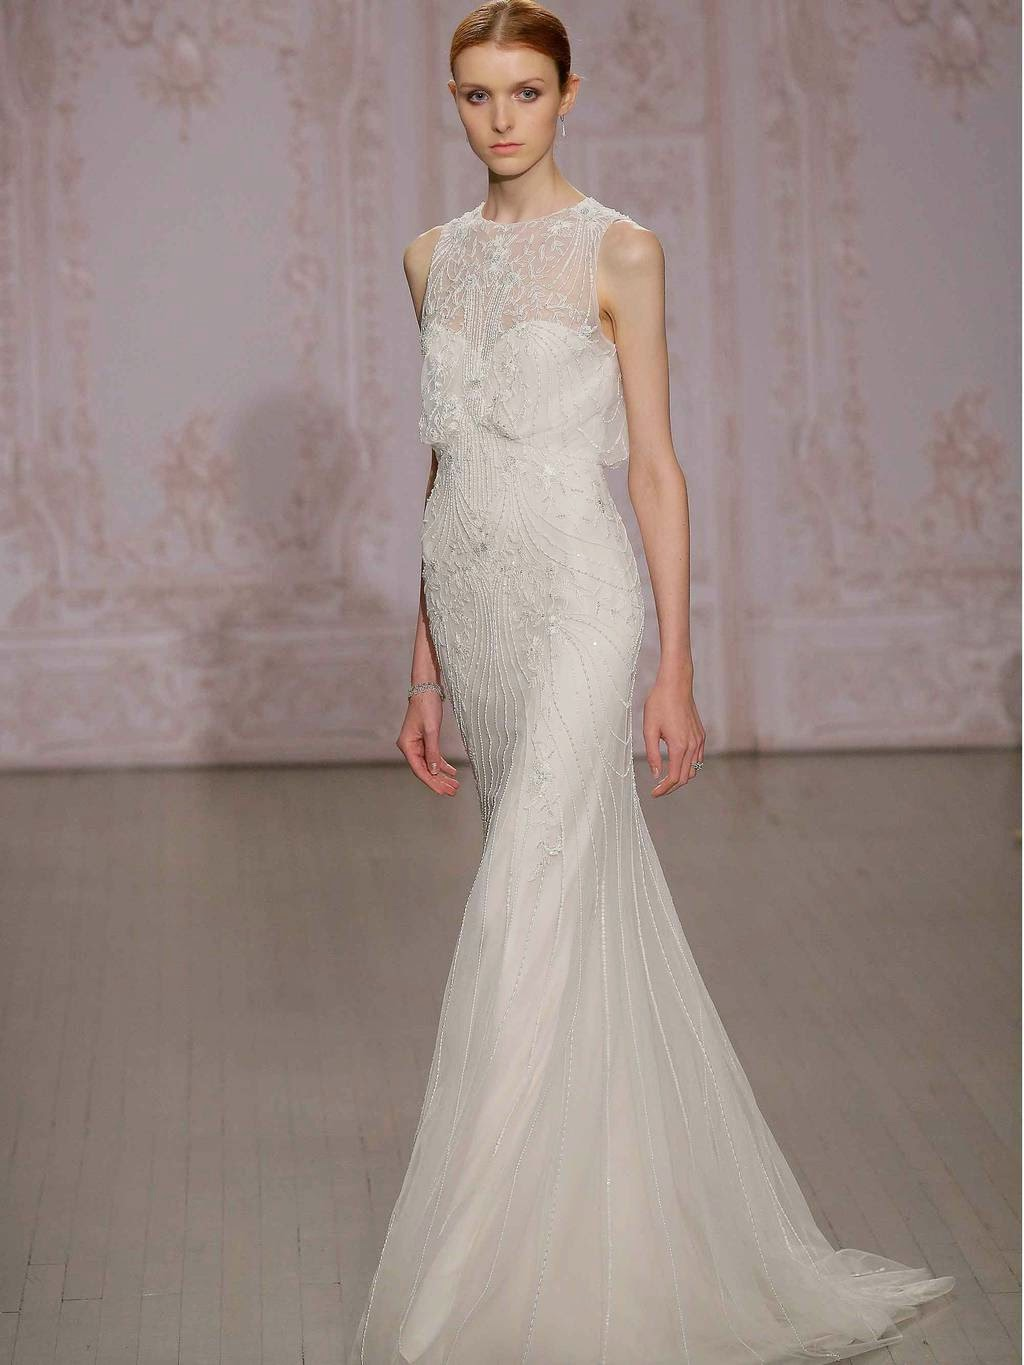 Best wedding dresses from the Fall 2015 collections ~ TRESCIENTOSESENTA